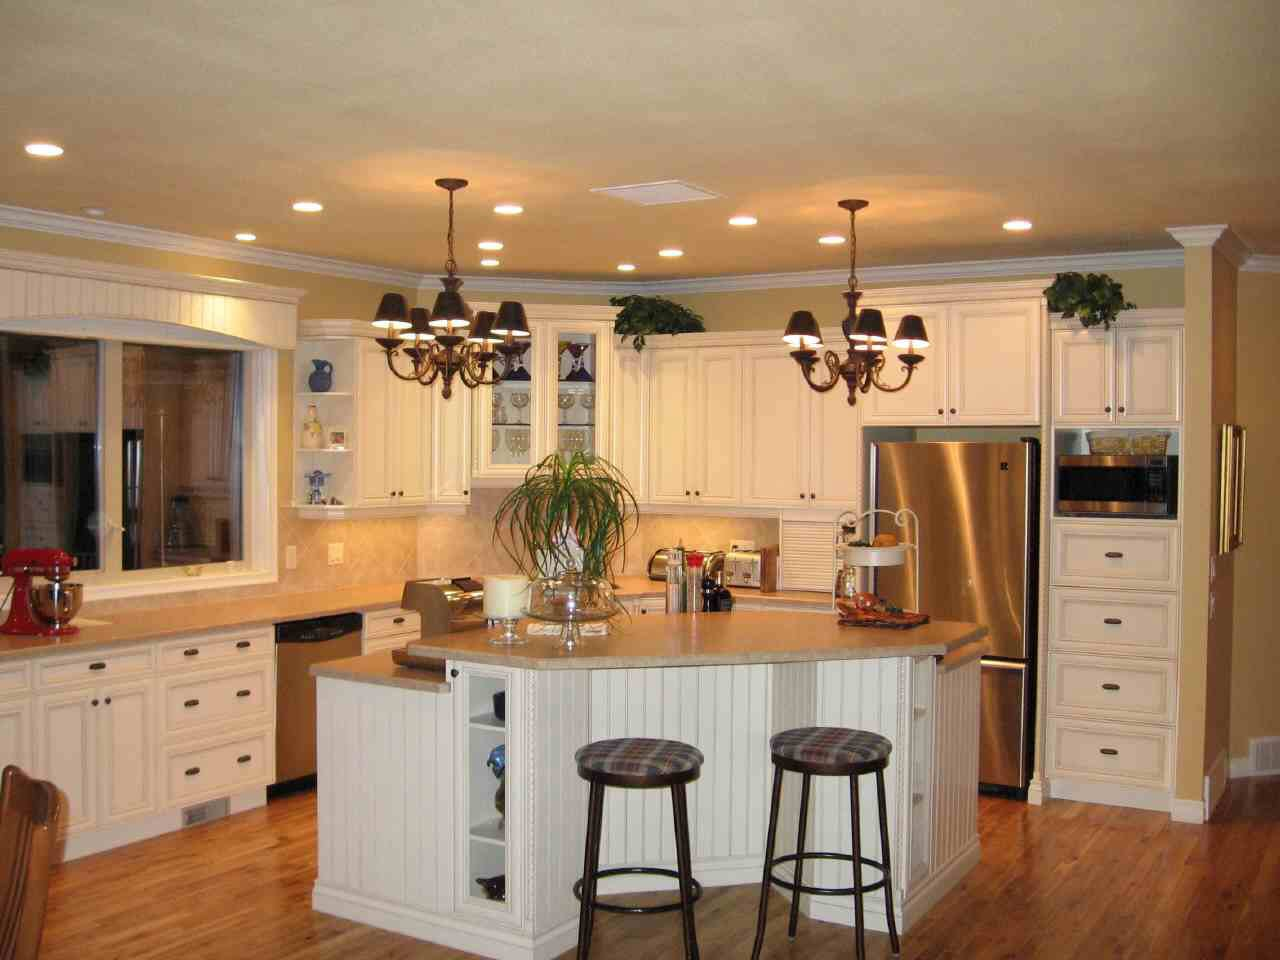 Kitchen Remodel Checklist | Built By Grace